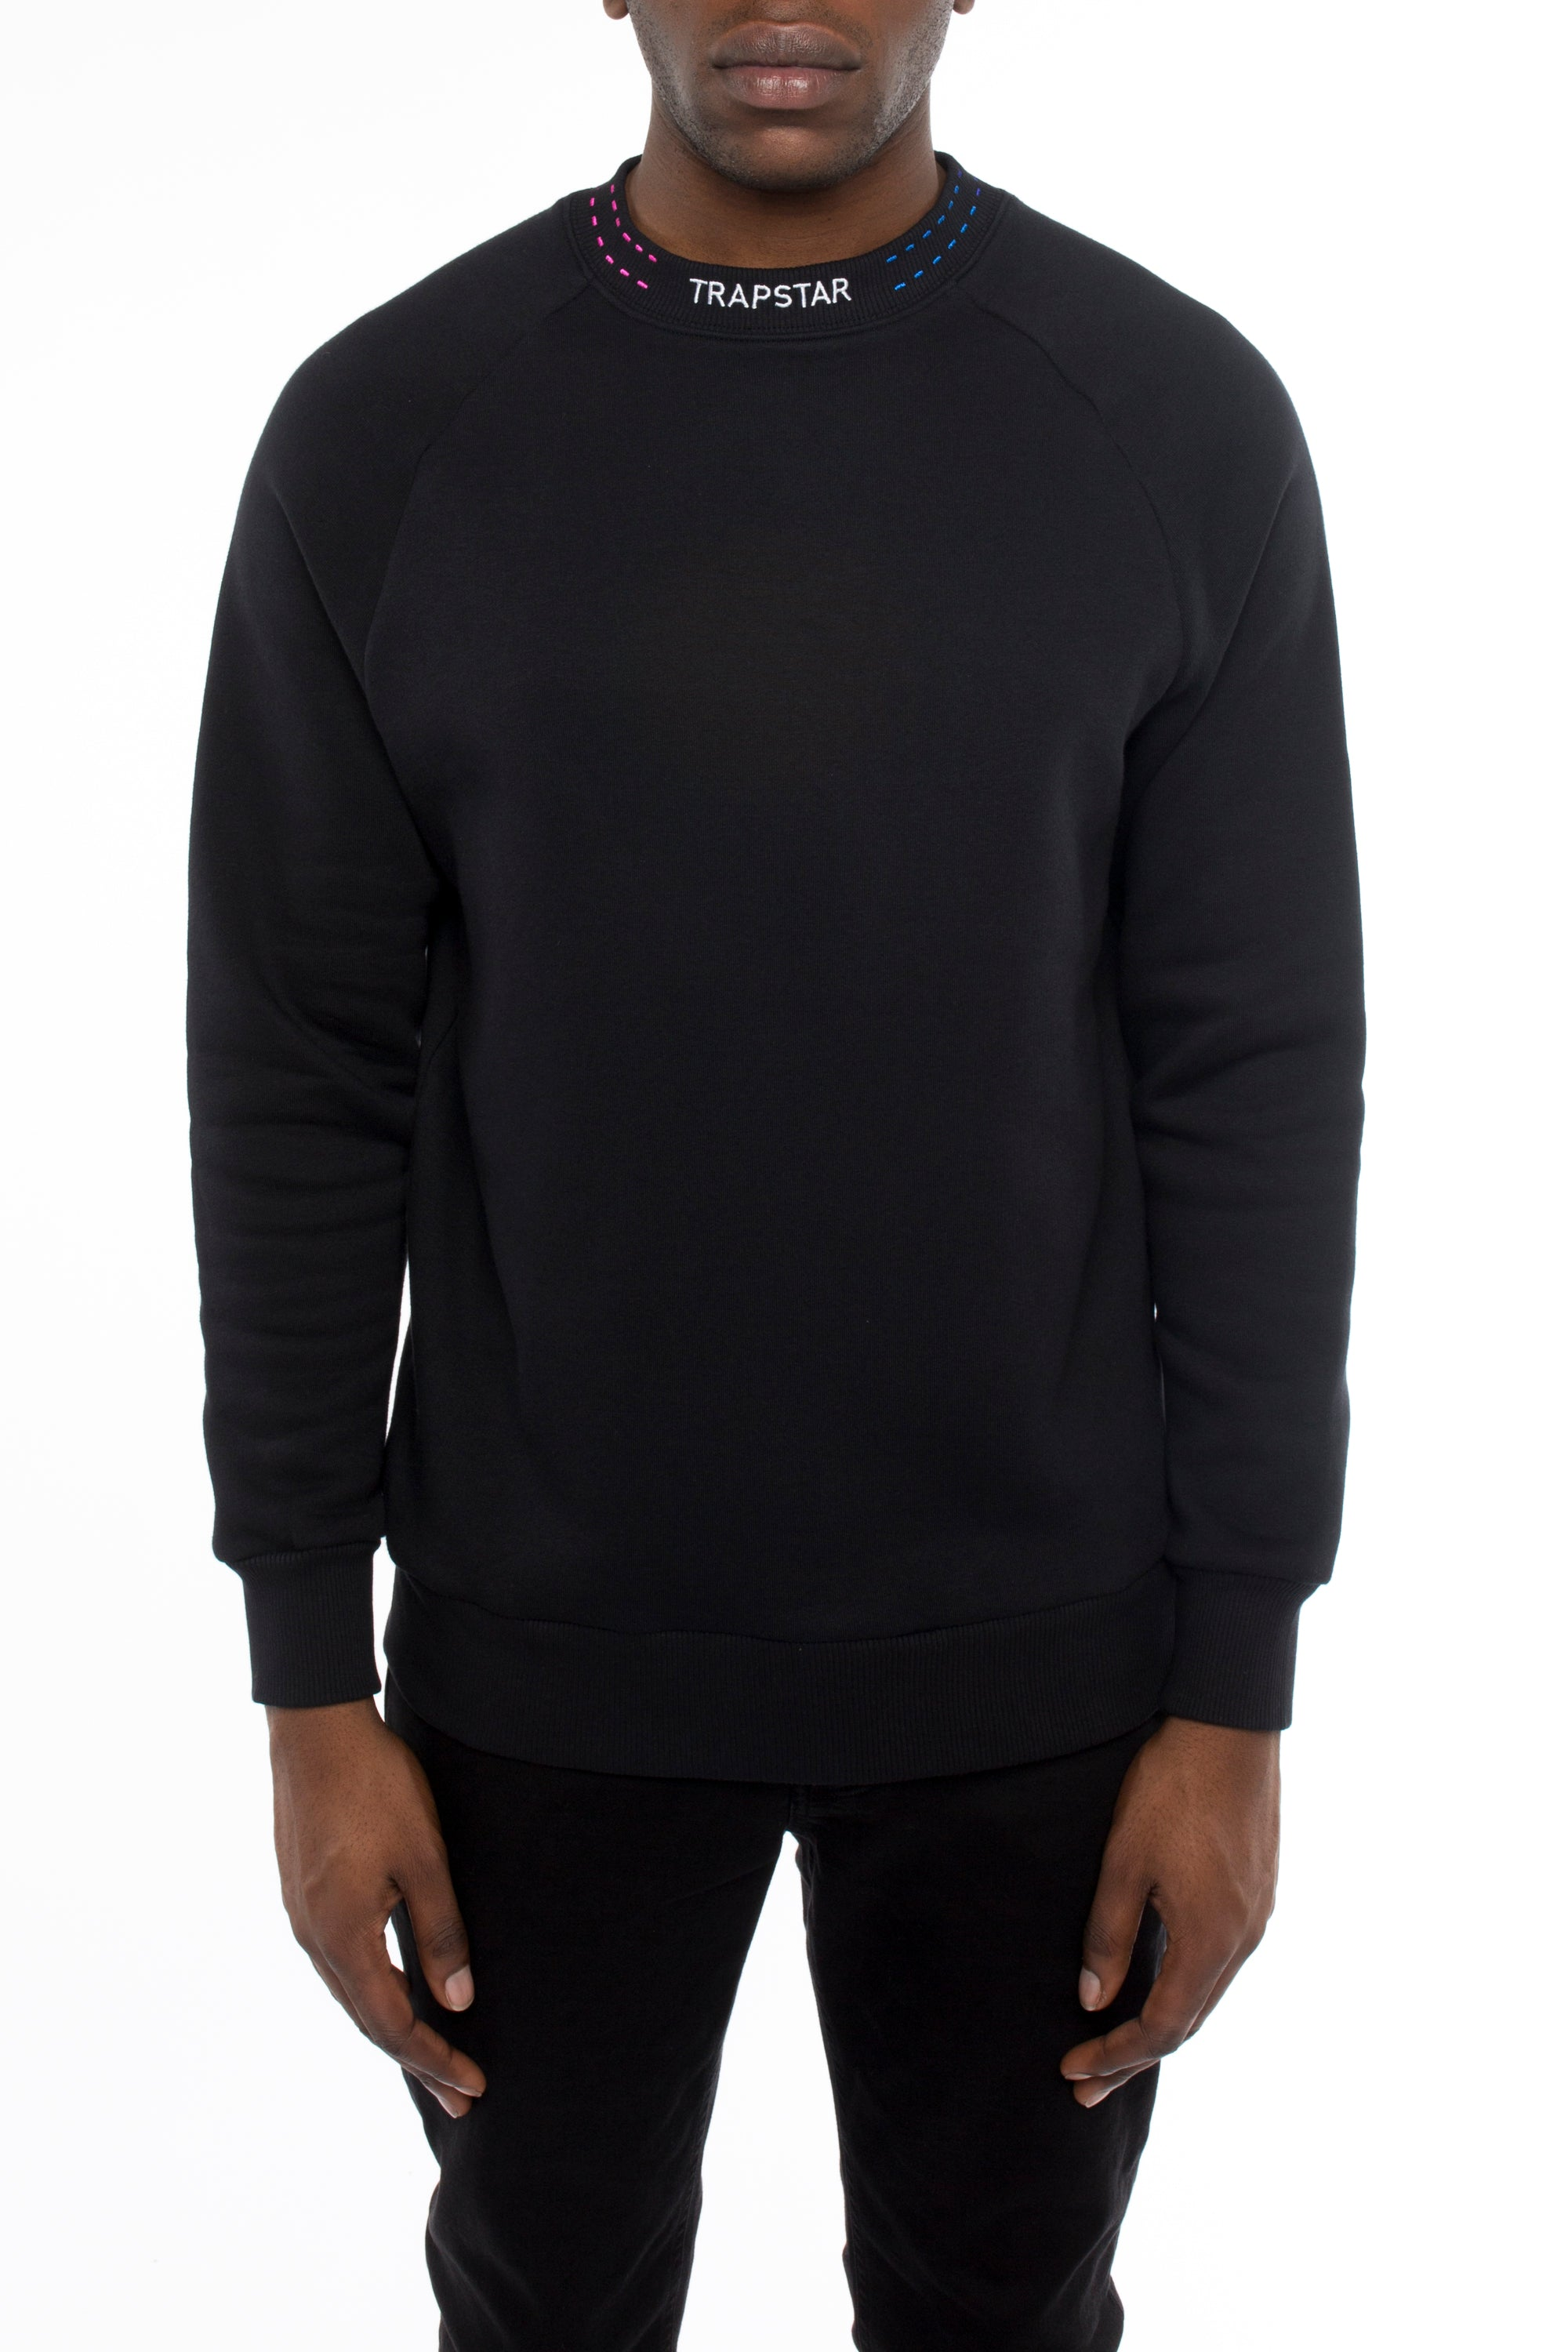 Trapstar Orbit Crewneck - Black